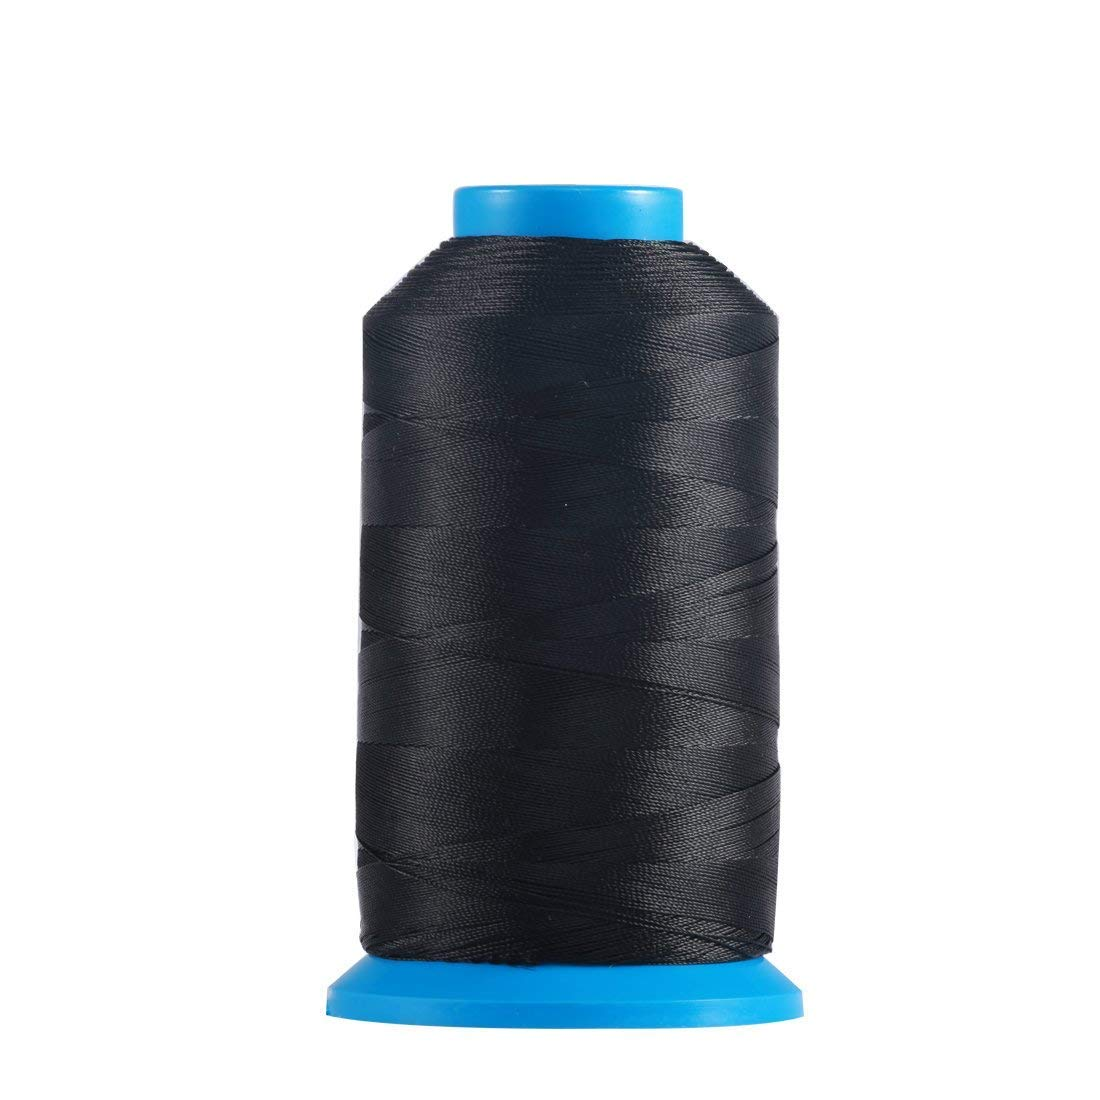 WellieSTR 1 Spool 4380 yards 0.1mm Black Quilter`s invisible 100% nylon monofilament thread,Monofilament Thread, Invisible Transparent 100% Nylon,Quilting Thread~ free shipping